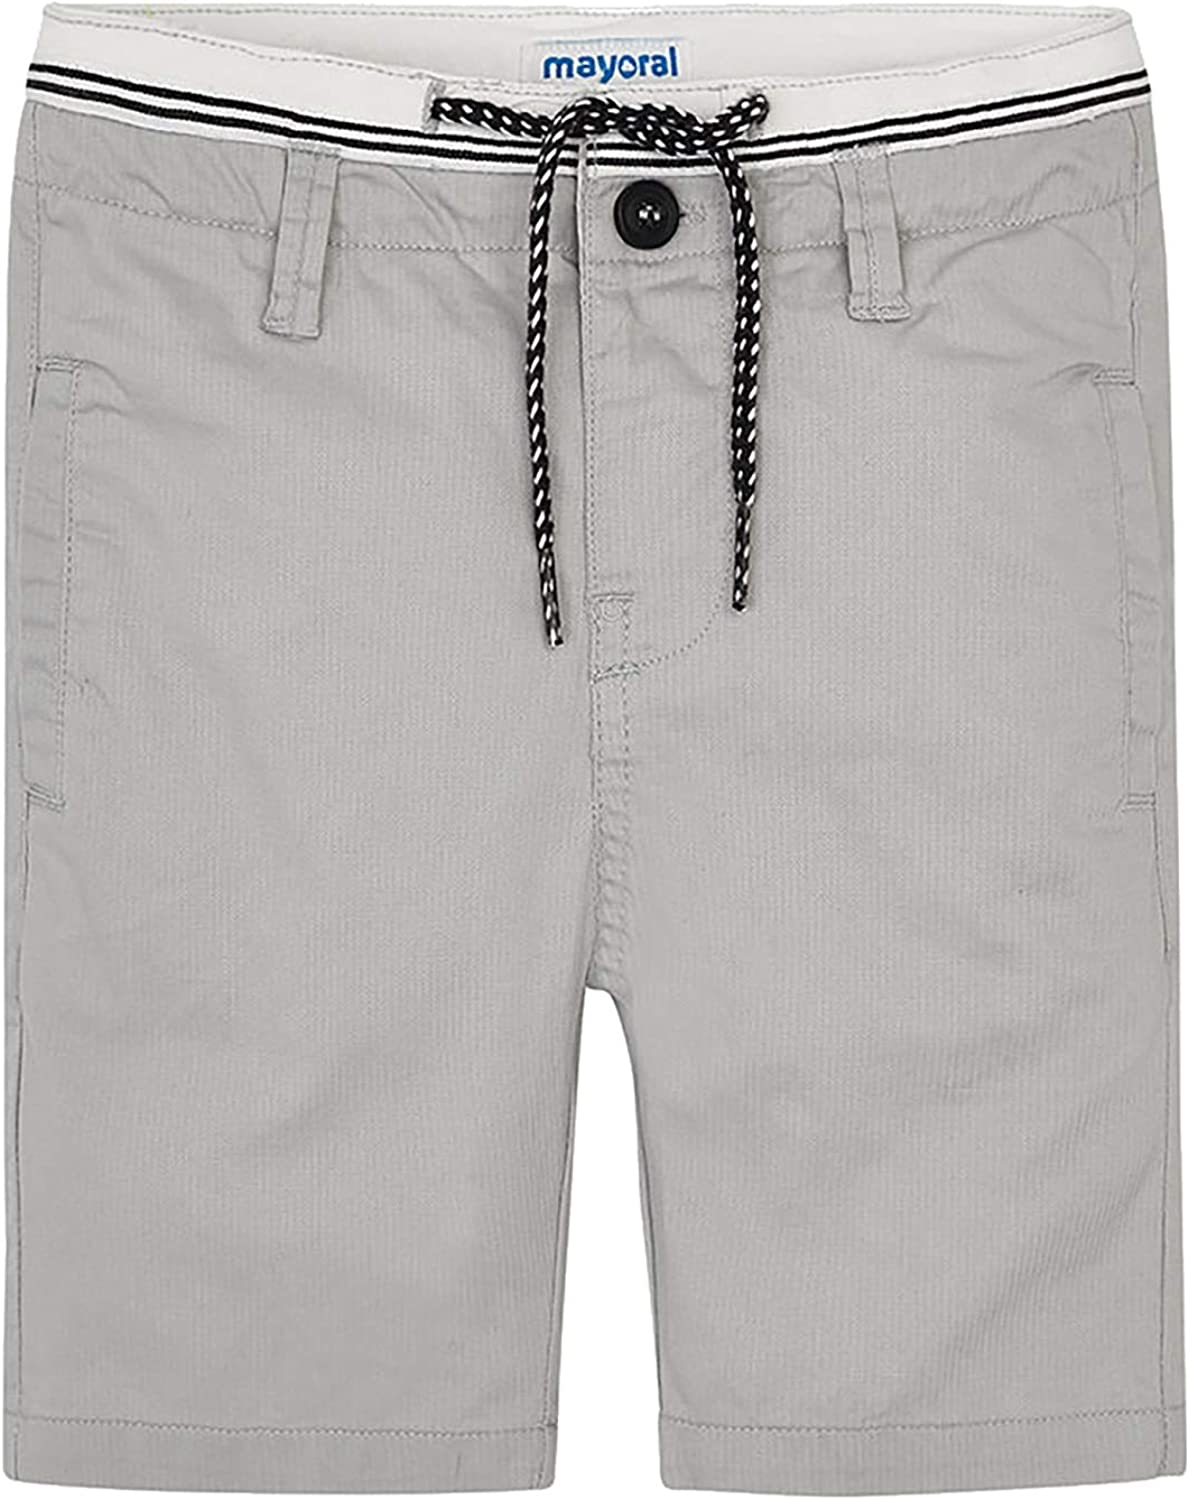 Mayoral - Chino Shorts for Boys - 3229, Marble